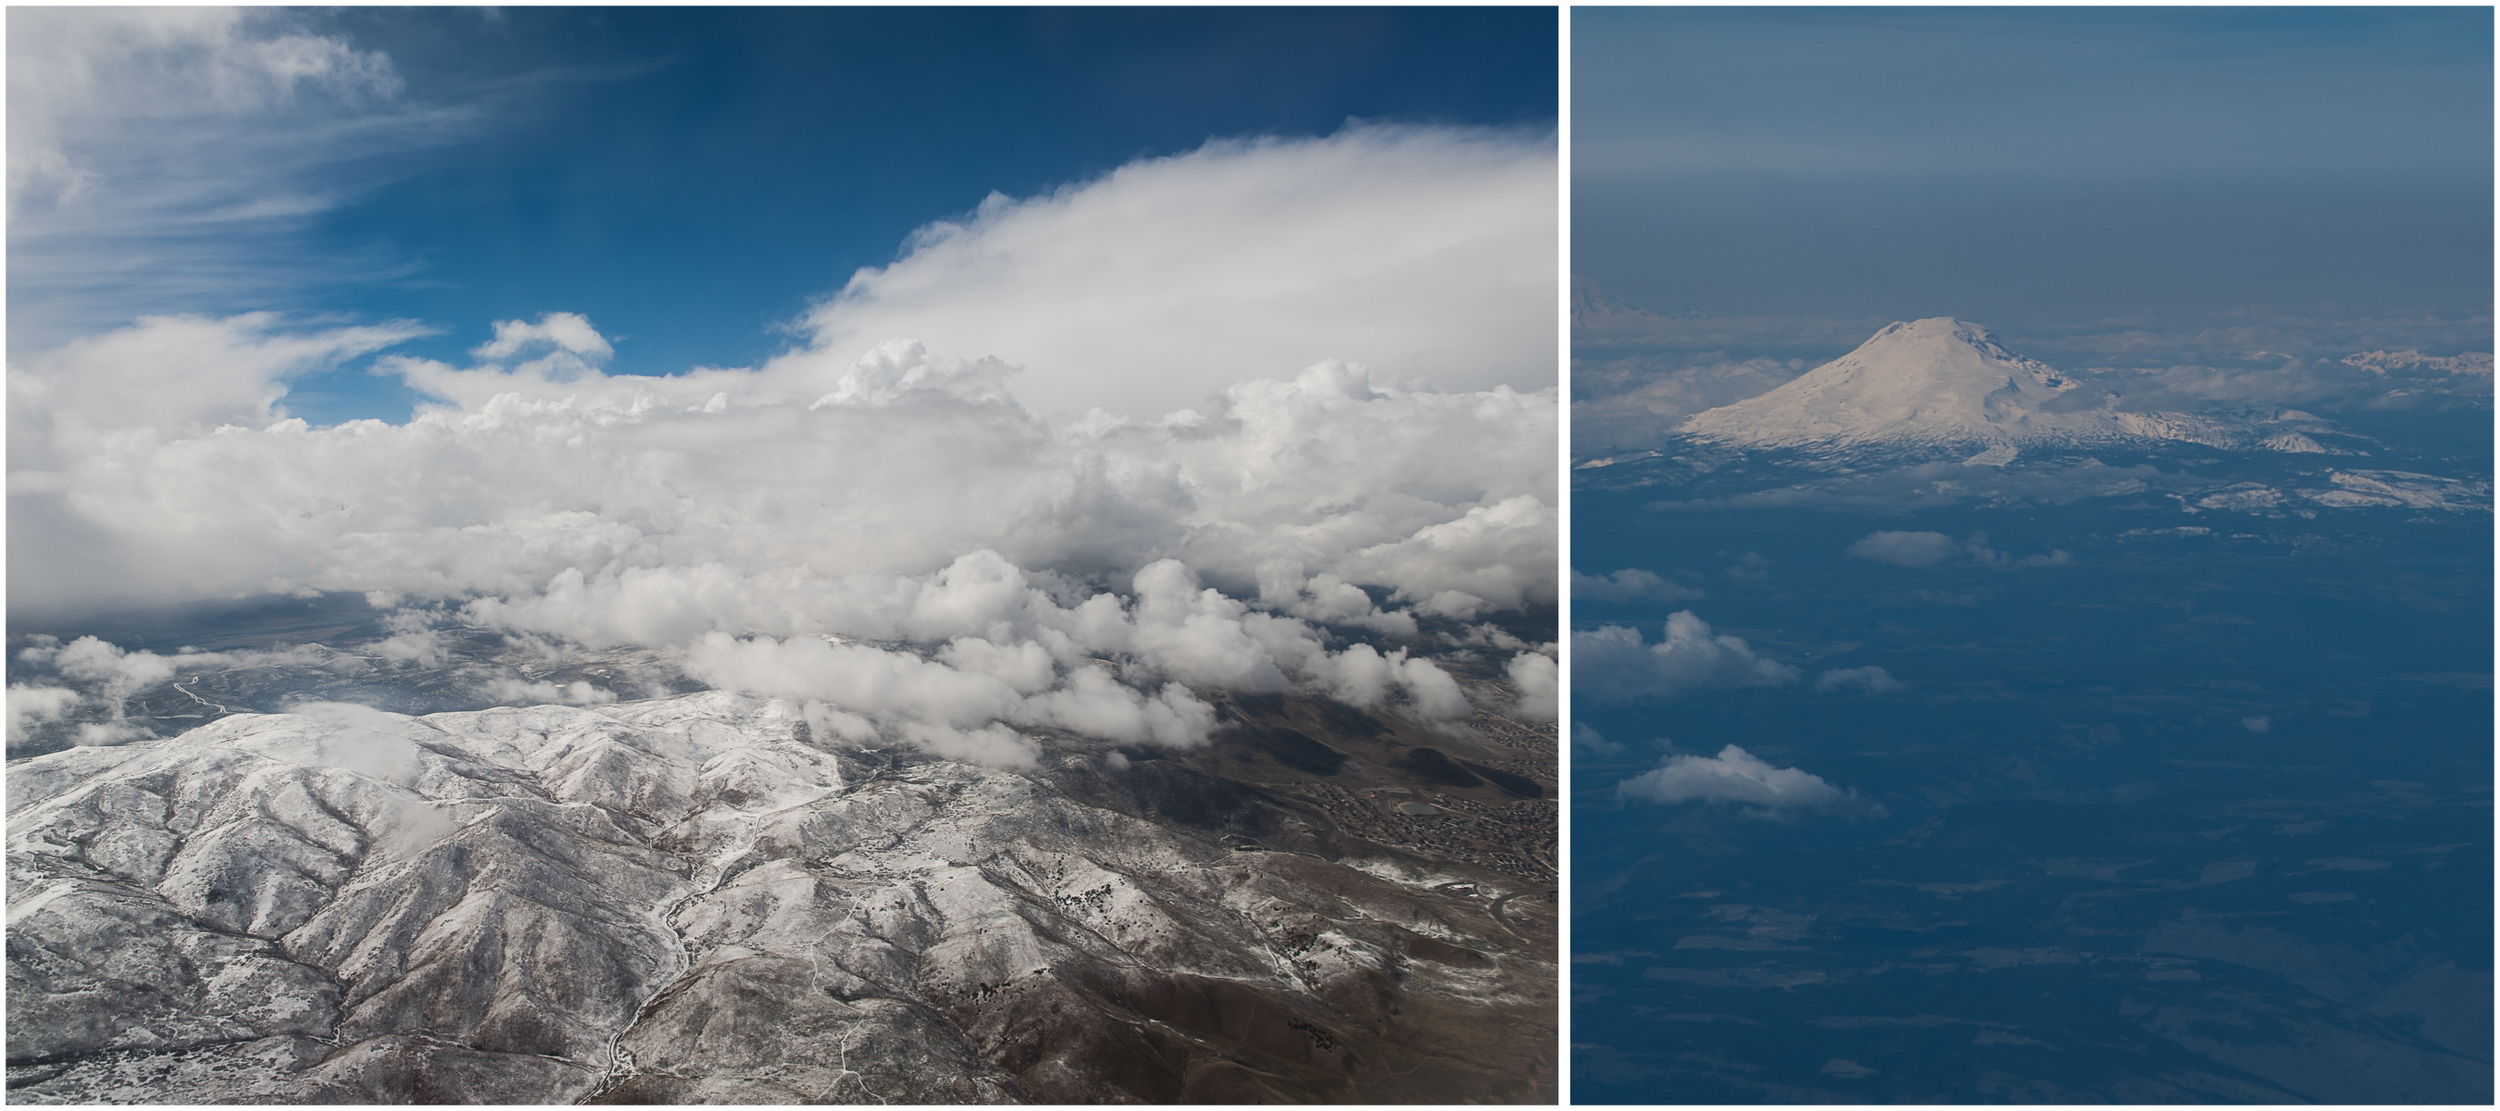 Flying in, we had an extremely brief stop-over in Salt Lake City. The second image is of one of the Three Sisters near Portland -- can't remember which in particular.